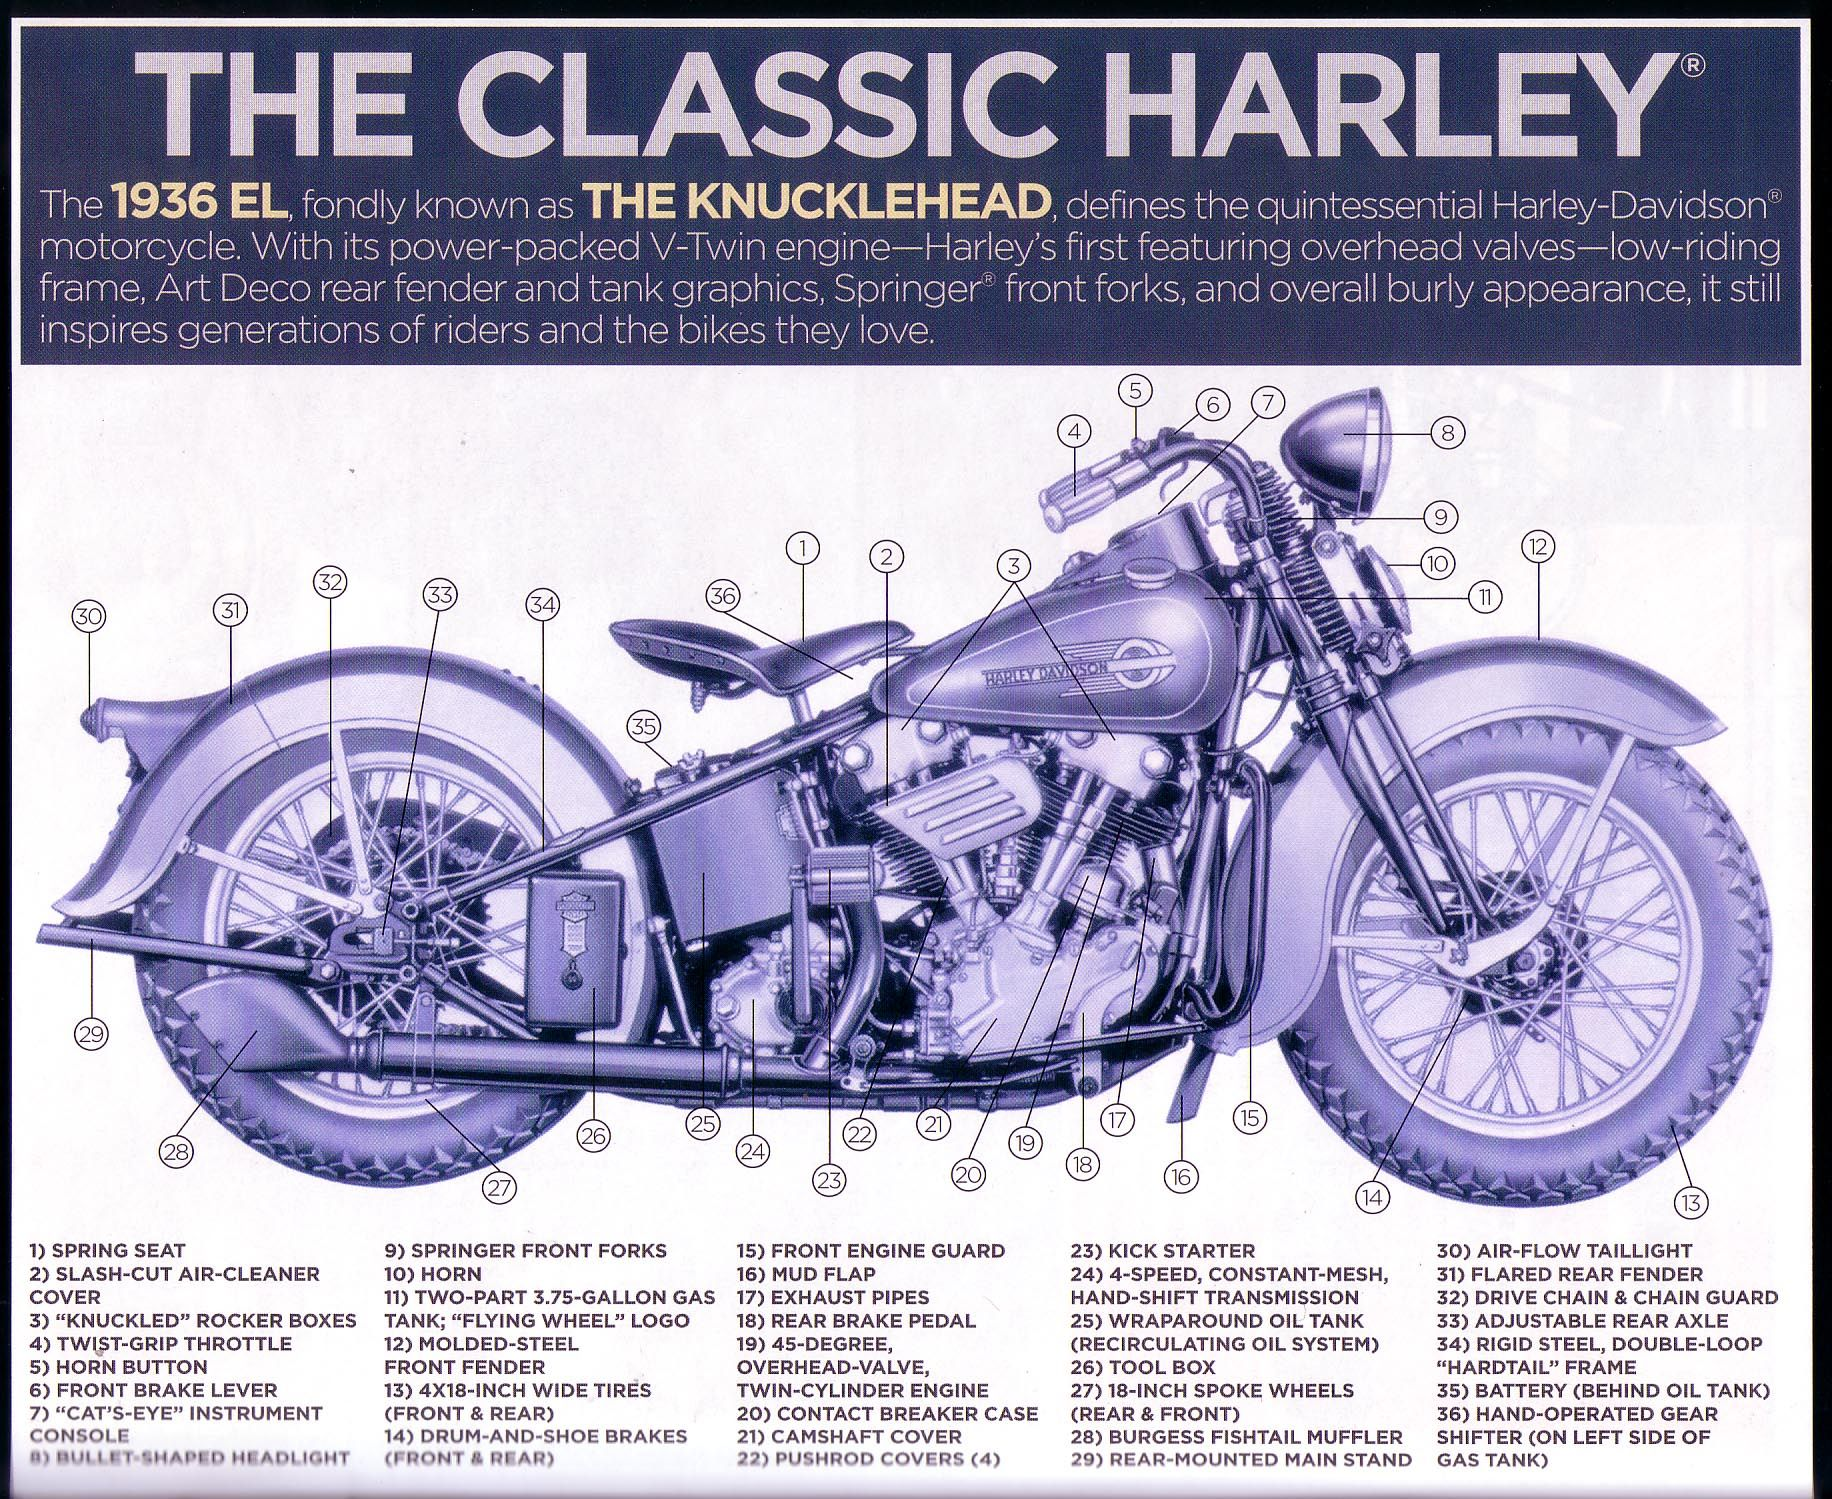 harley davidson motorcycle diagrams wiring diagrams harley springer parts diagram harley davidson motorcycle diagrams wiring diagram [ 1832 x 1499 Pixel ]